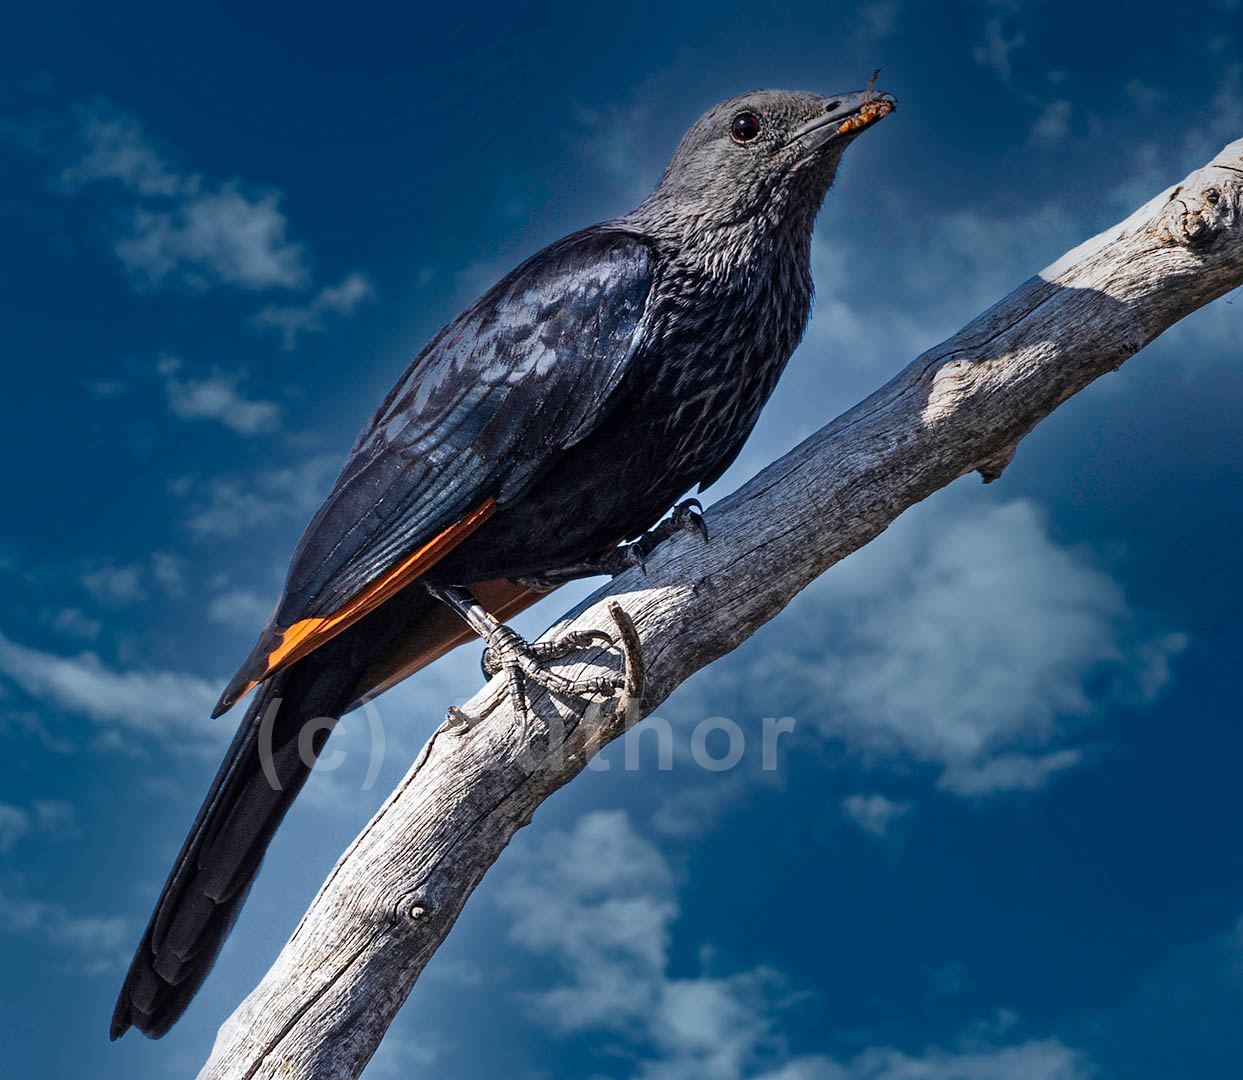 3_PI_Redwinged Starling_Andrew Mayes